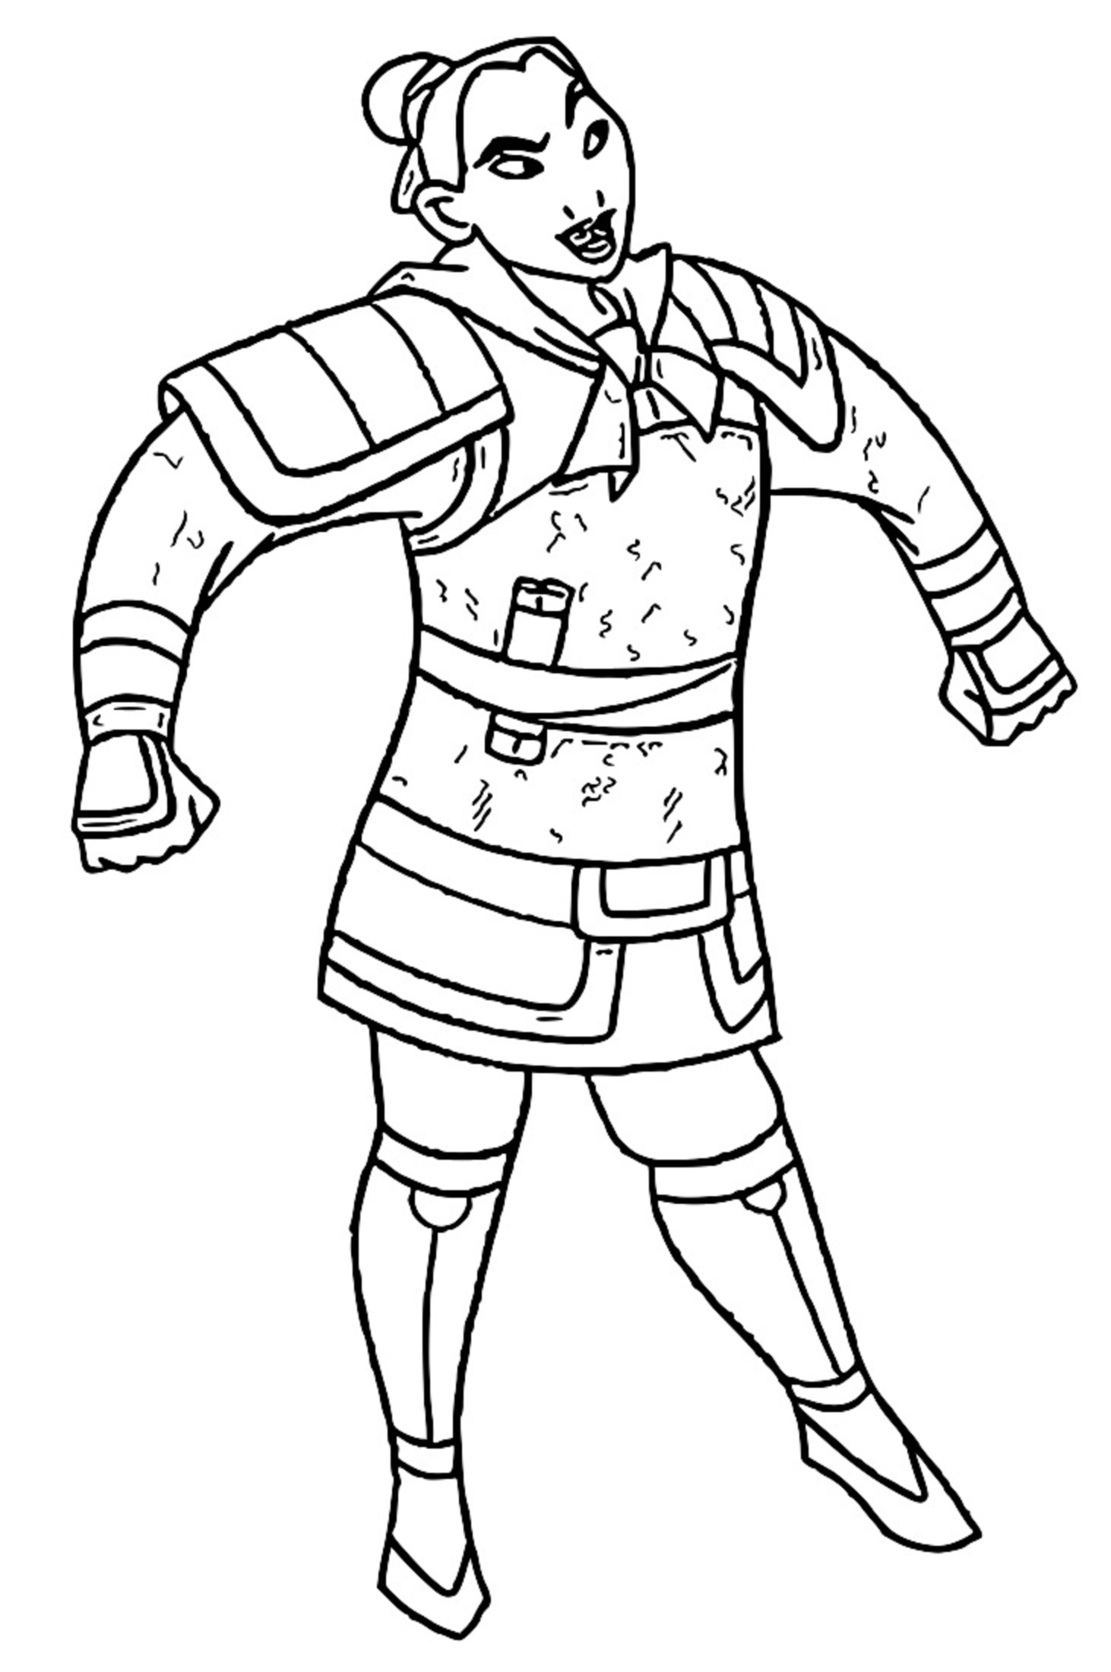 Mulan Khan Little Brother Coloring Page 04